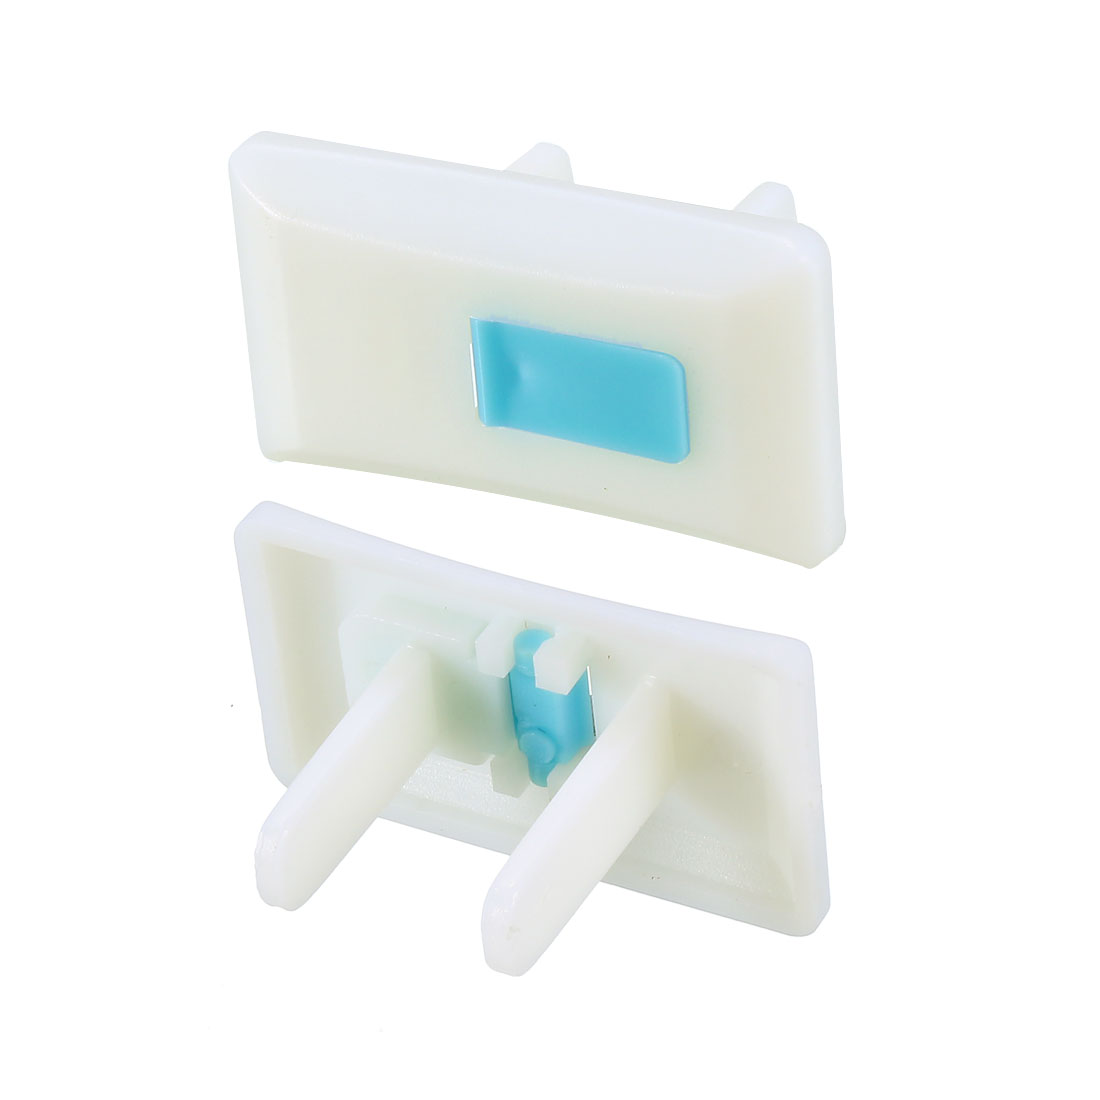 US Stand Power Socket Covers Durable Electrical Protector Cap Blue 40 Pcs